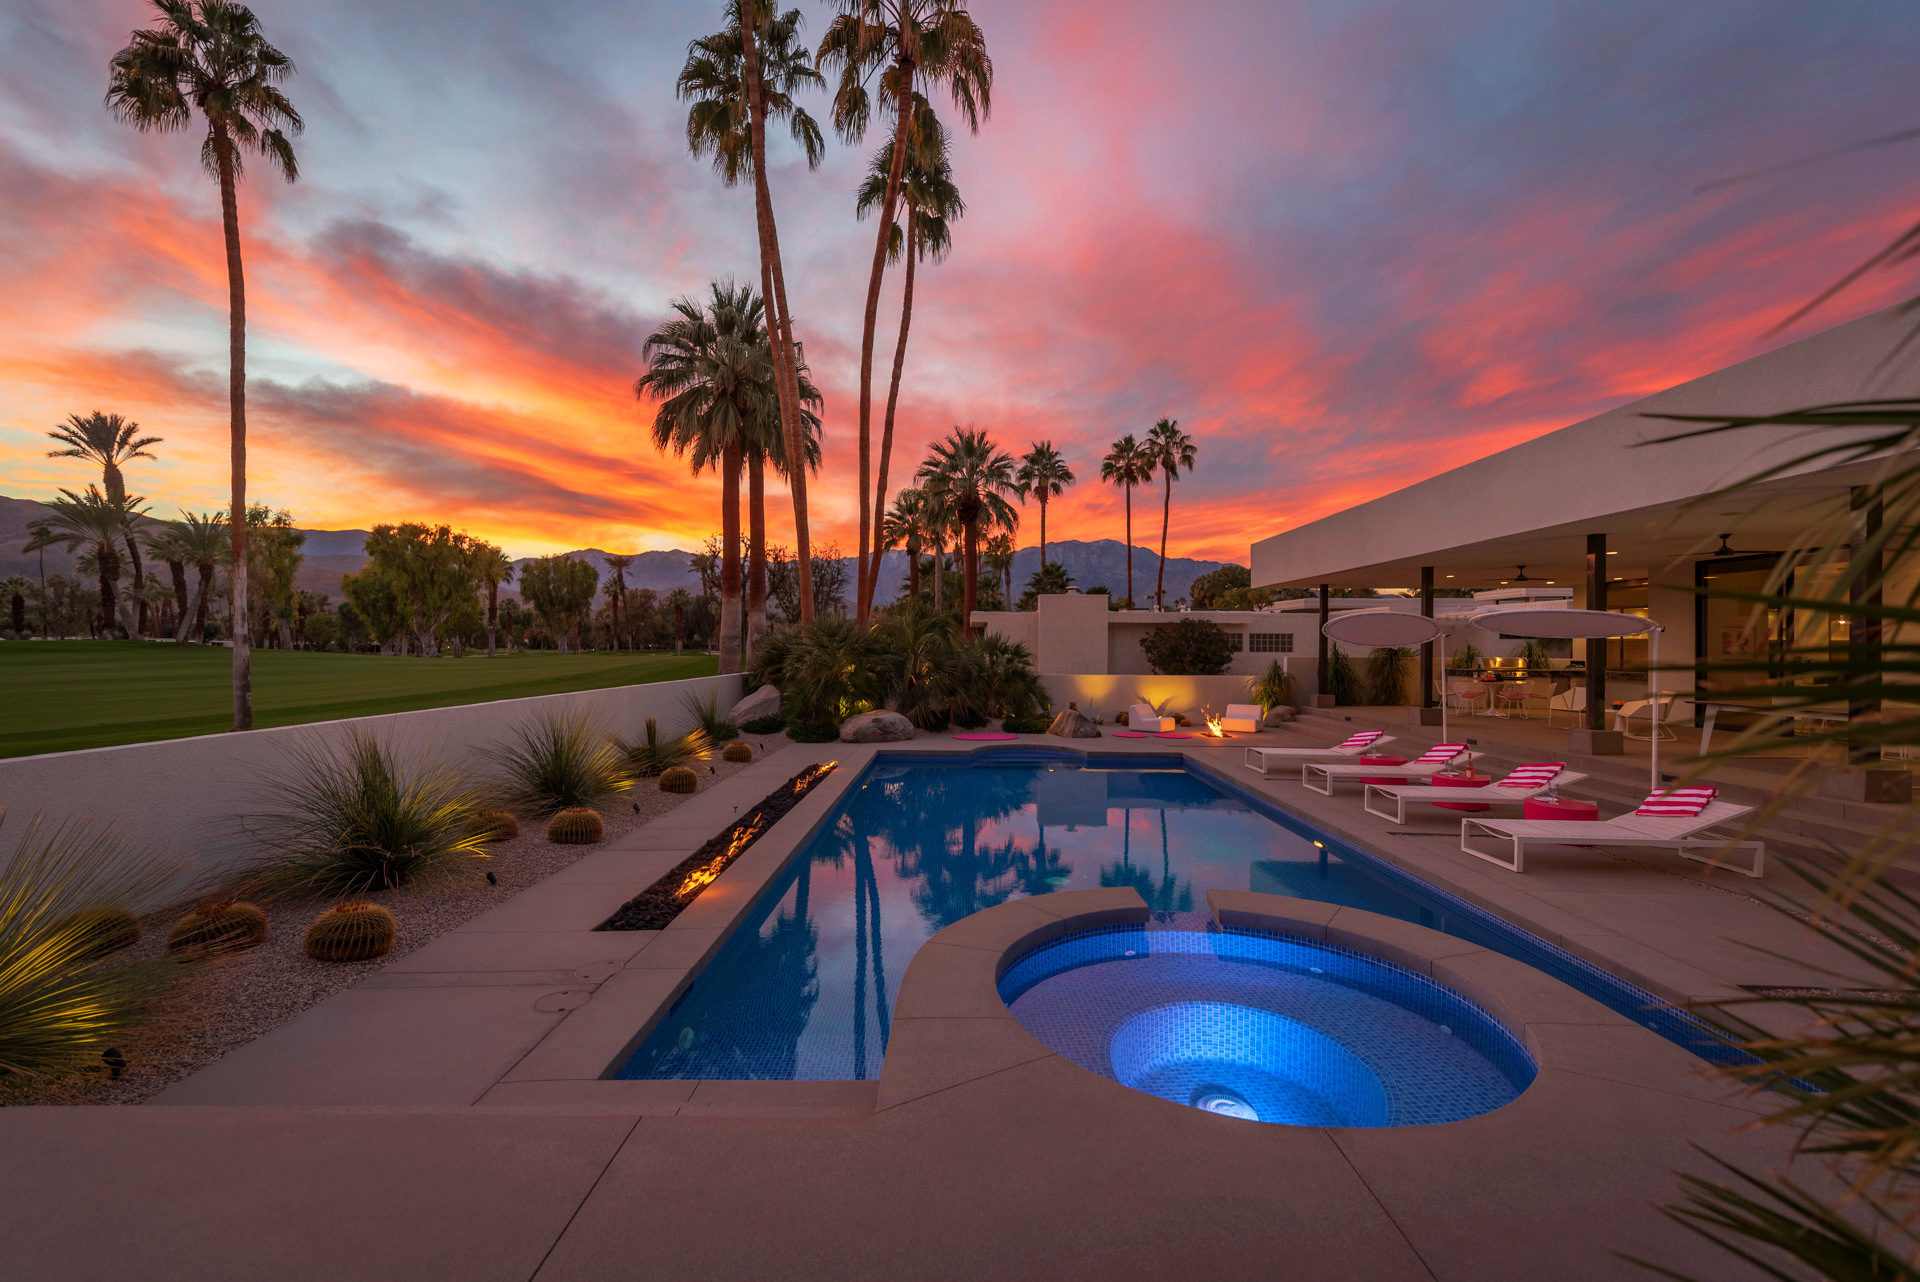 $200 Off a Night at</br>Artful Desert Paradise!